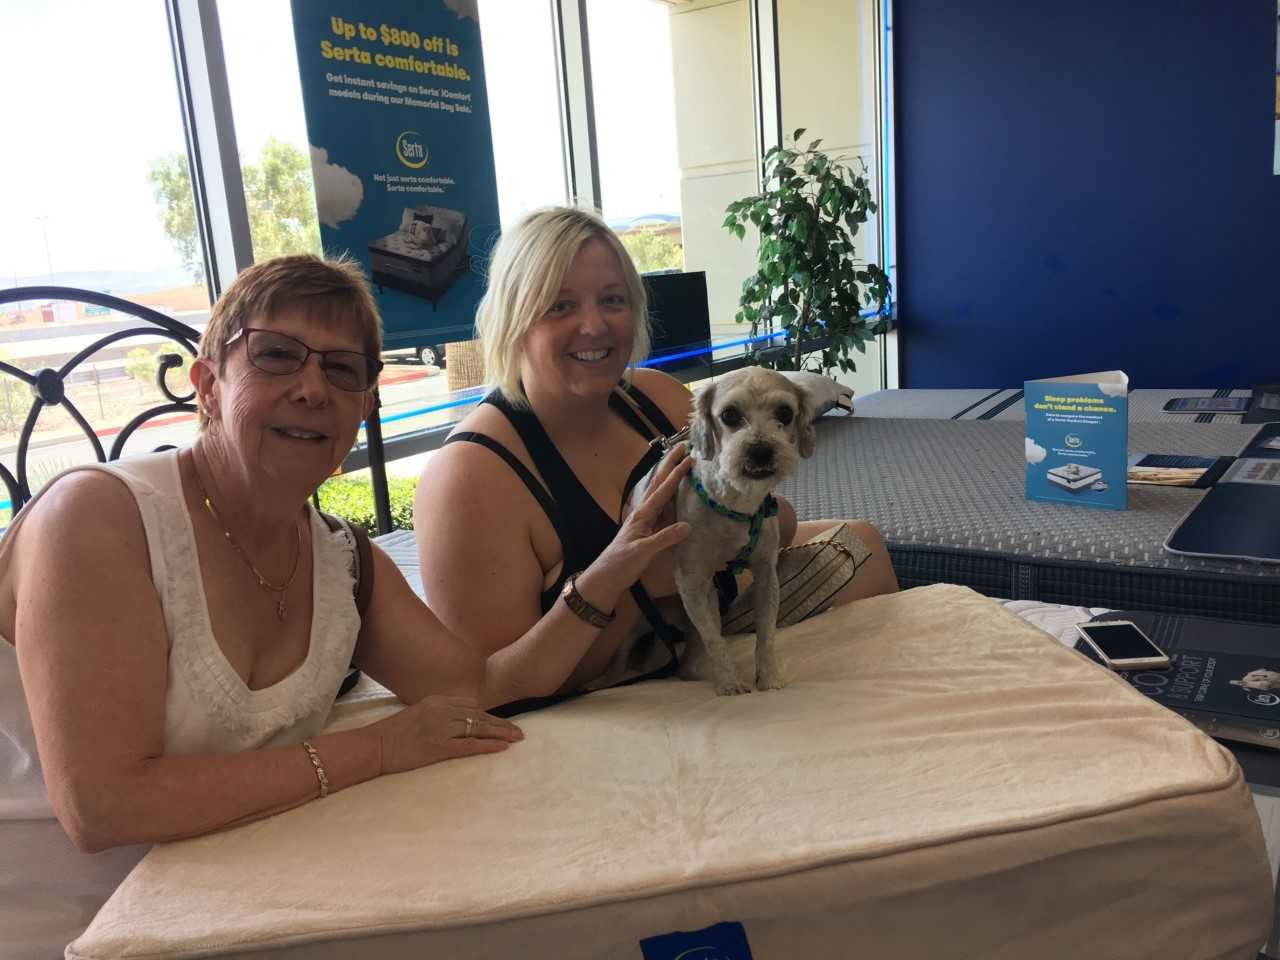 Rufus was adopted and given a free pet bed from Beat Mattress in Las Vegas.